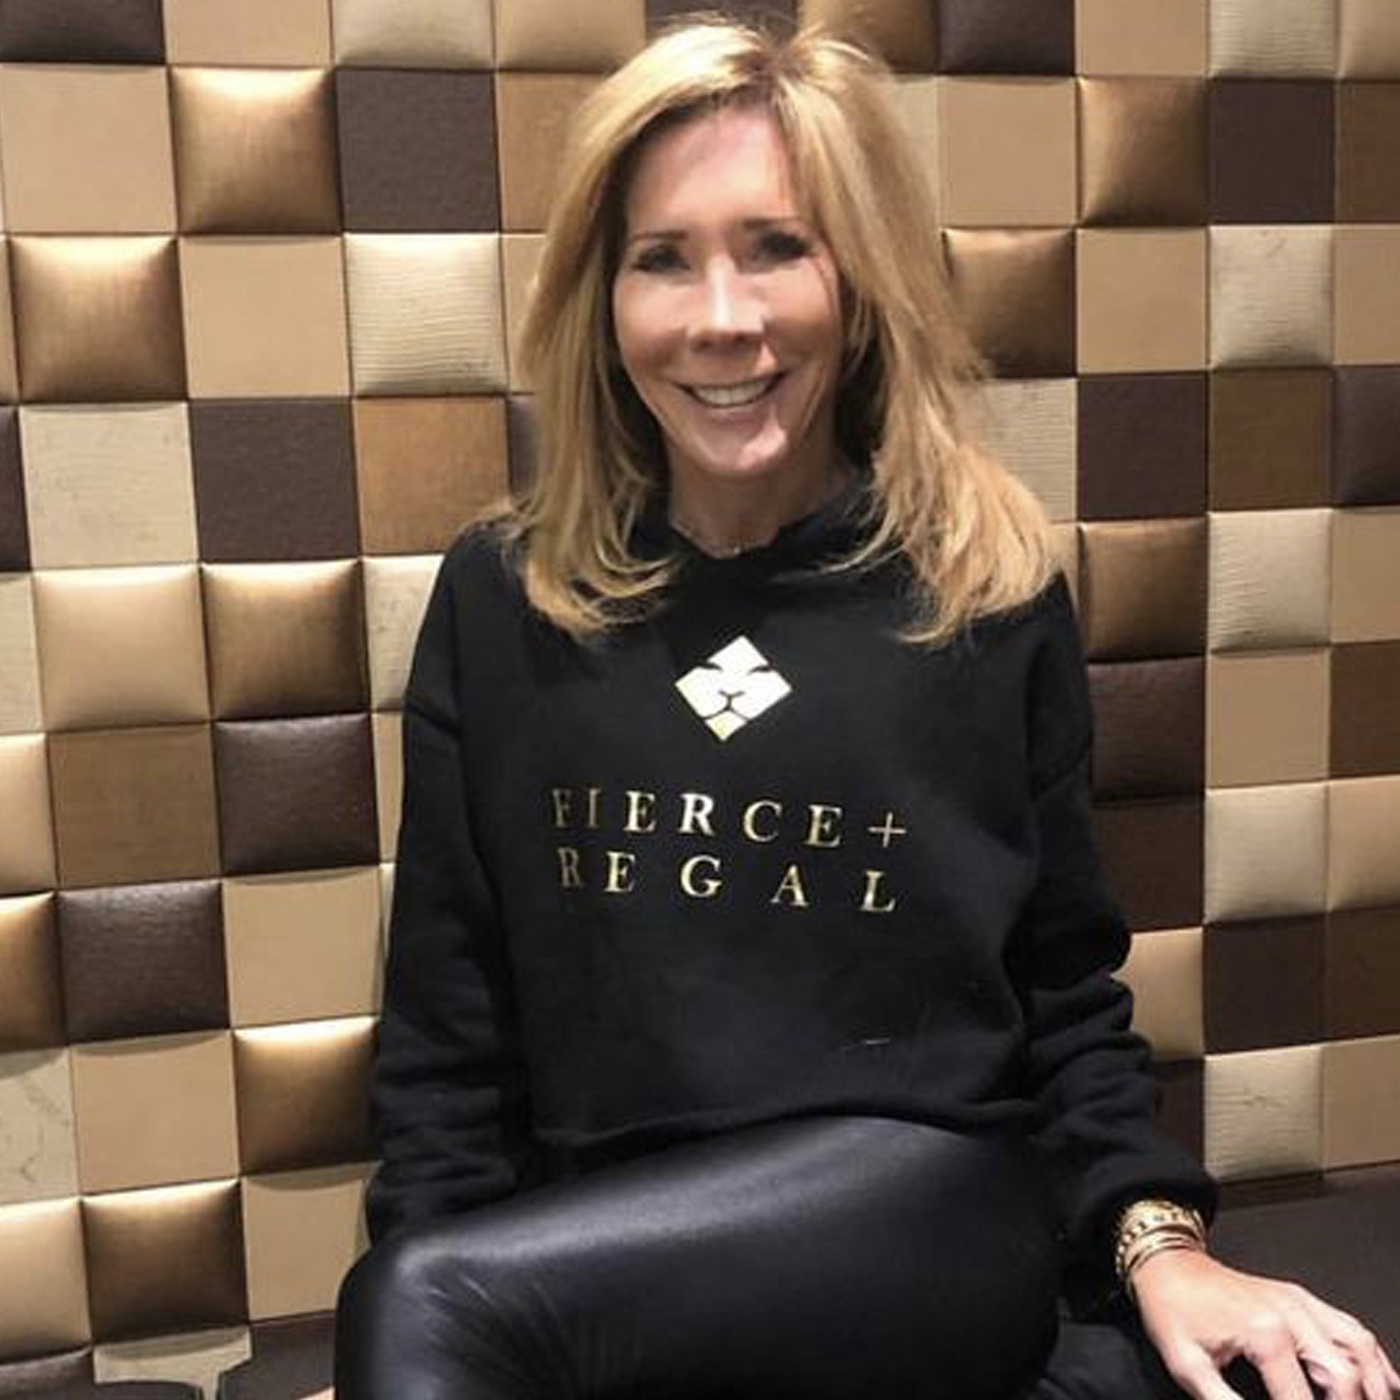 Founder Of Fierce + Regal Shares Creative Marketing Strategies For a Successful Holiday Season -